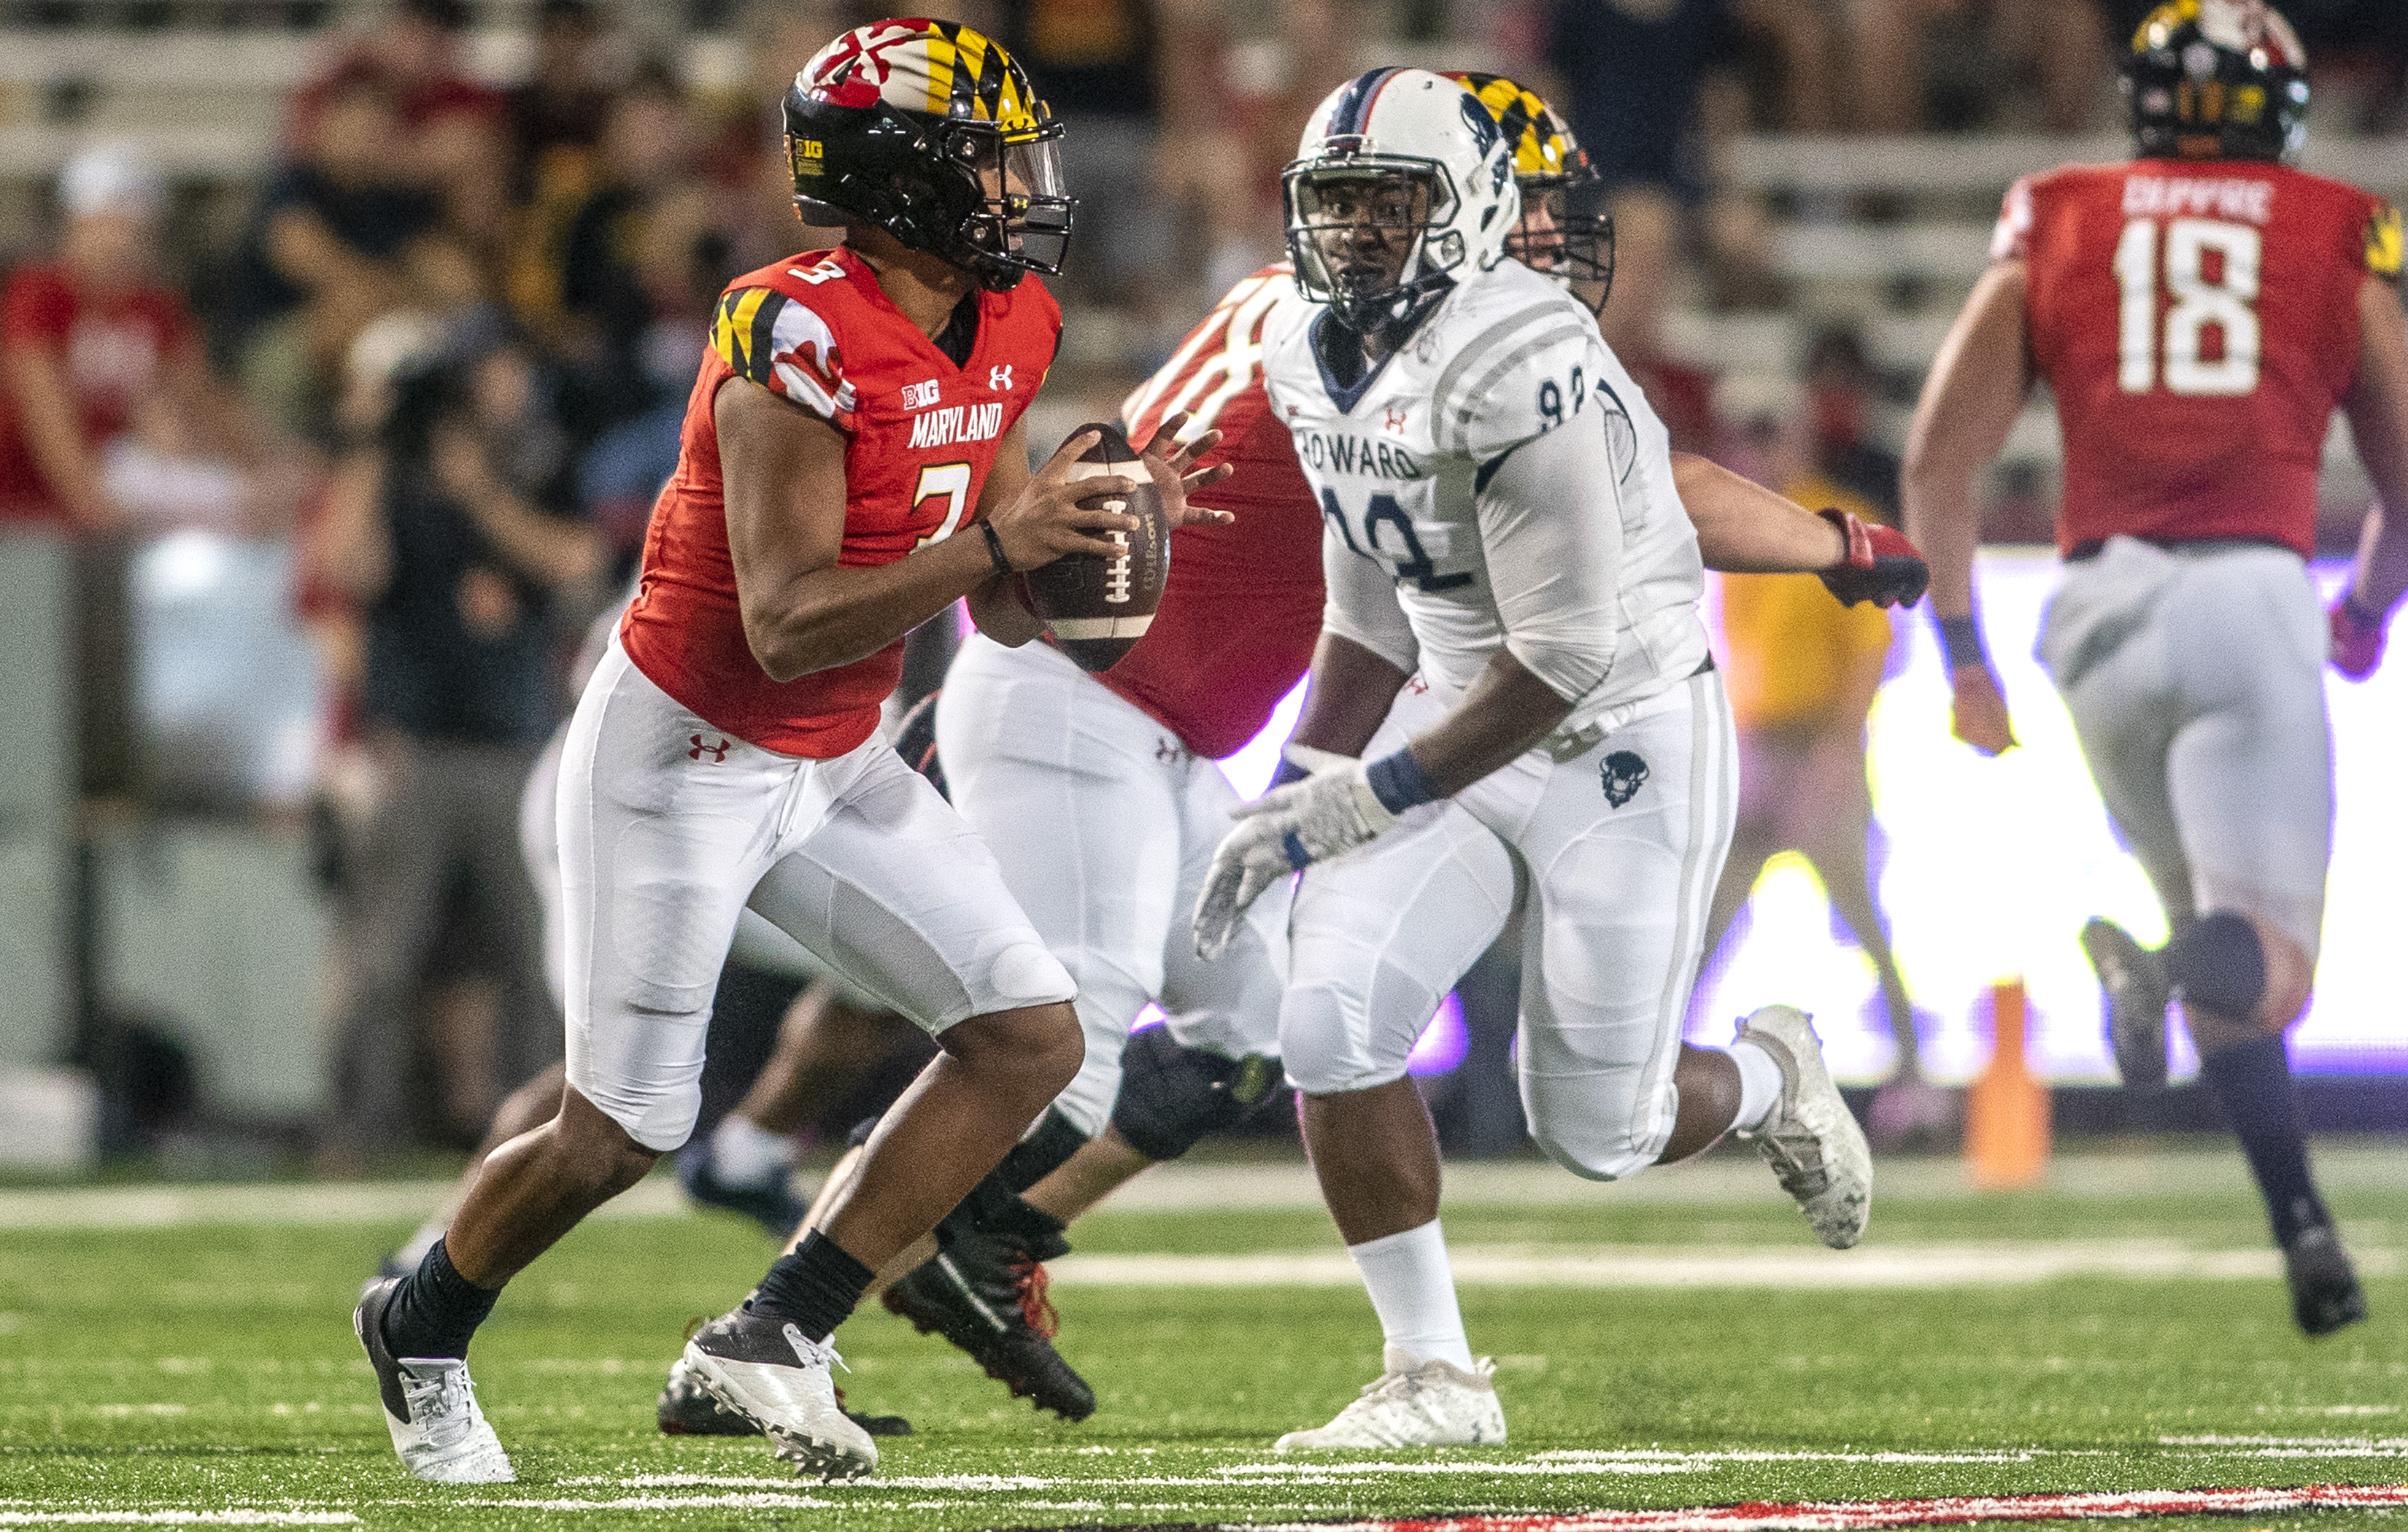 Howard Bison defensive lineman Aaron Motley moves up on Maryland Terrapins quarterback Taulia Tagovailoa during a college football game between the Howard Bison and the Maryland Terrapins, on September 11, 2021, at Capital One Field at Maryland Stadium, in College Park, Maryland.